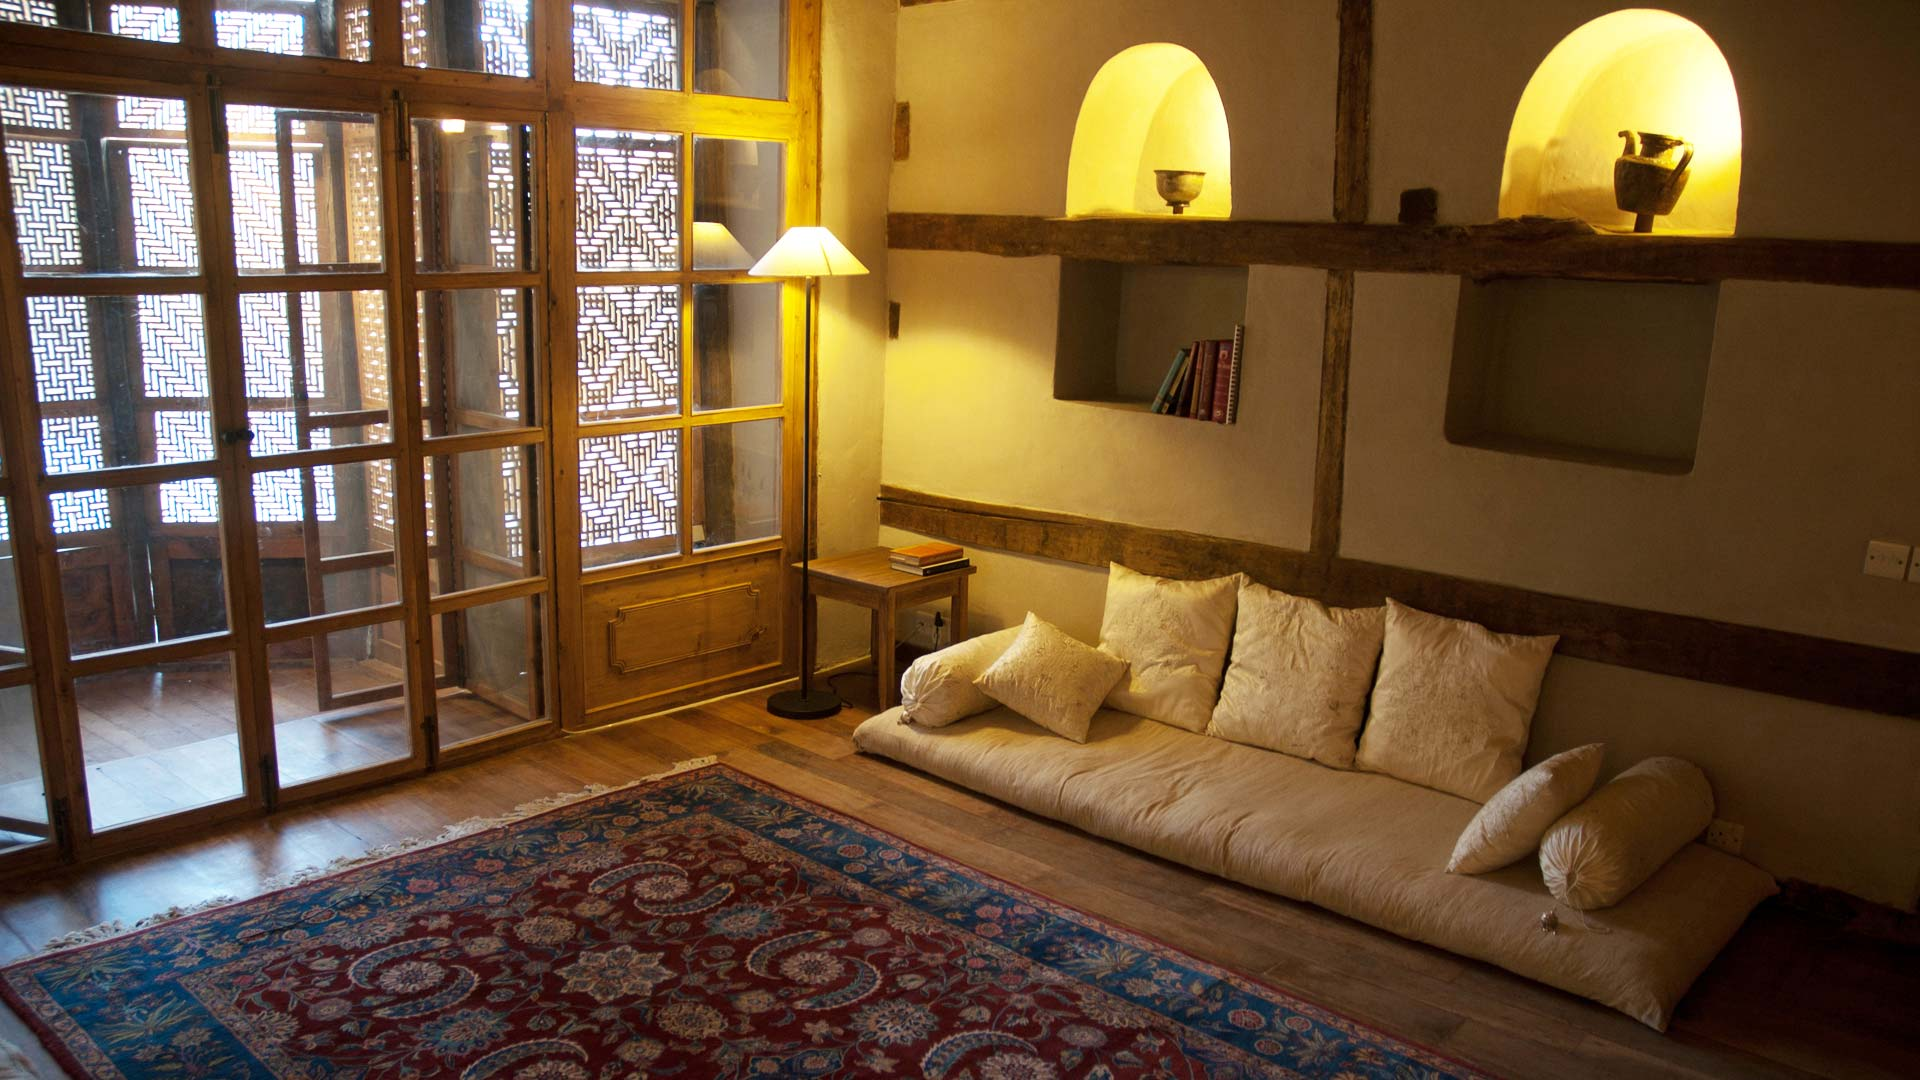 Raja's room of Shigar Fort Residence, Baltistan, Northern Areas, Pakistan